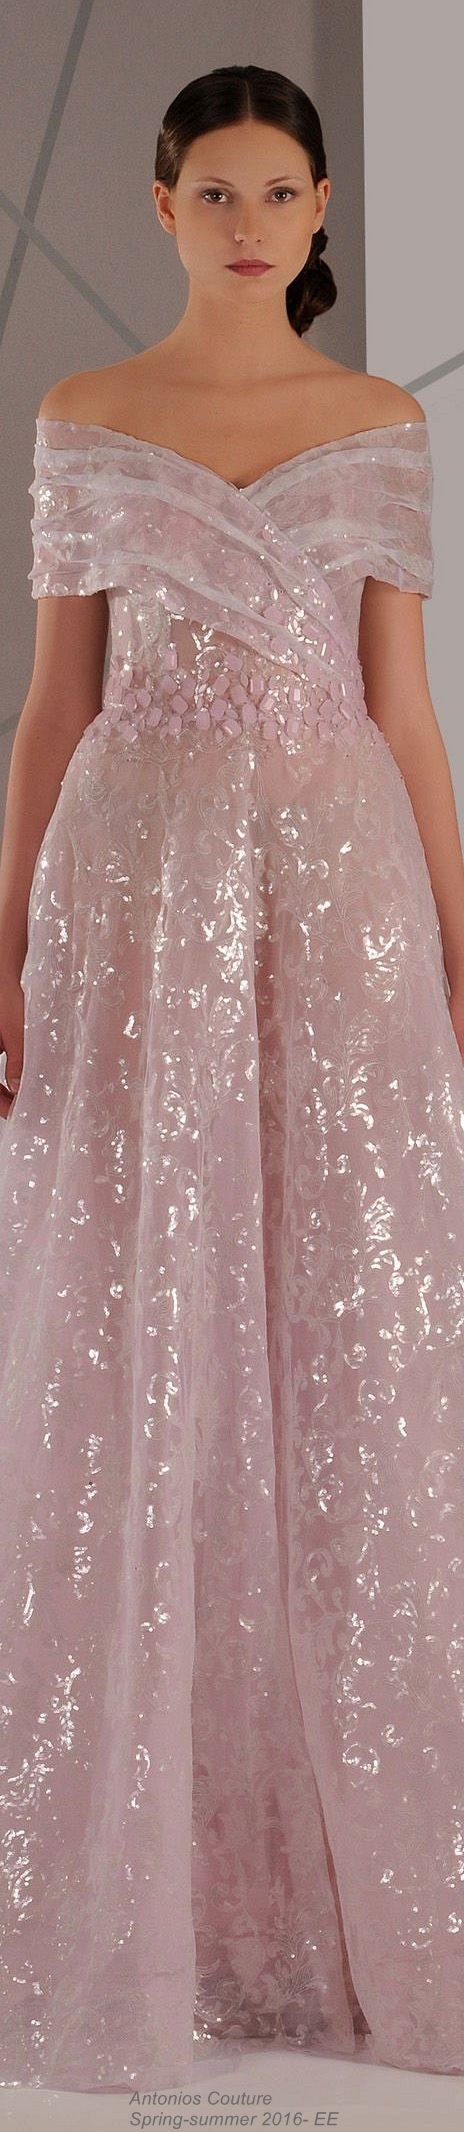 Antonios Couture  Spring-summer 2016- EE